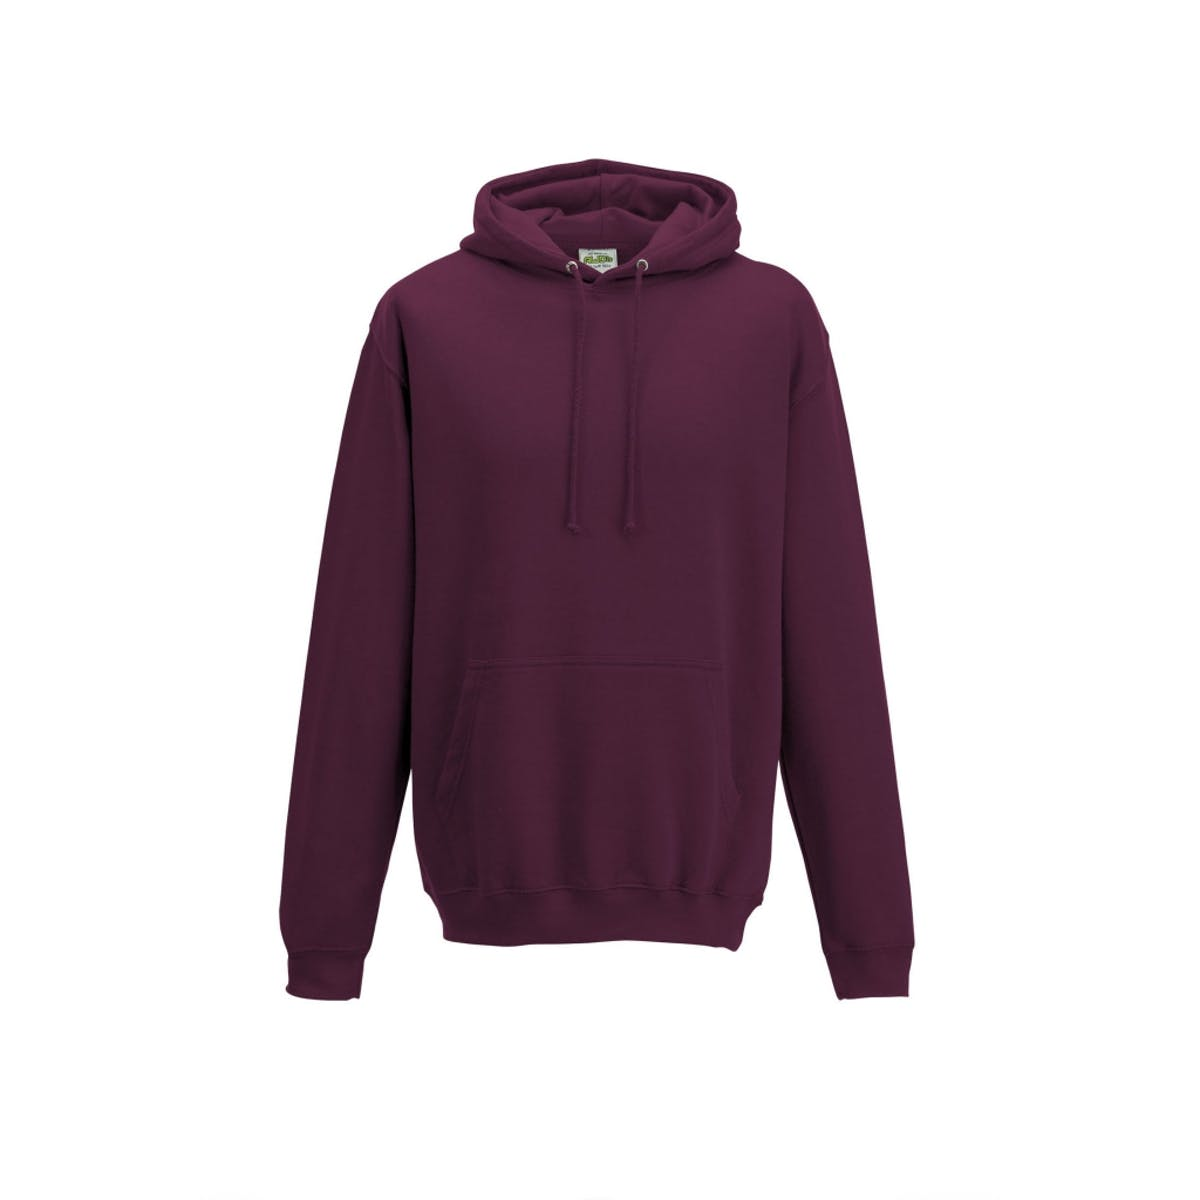 burgundy overhead college hoodies